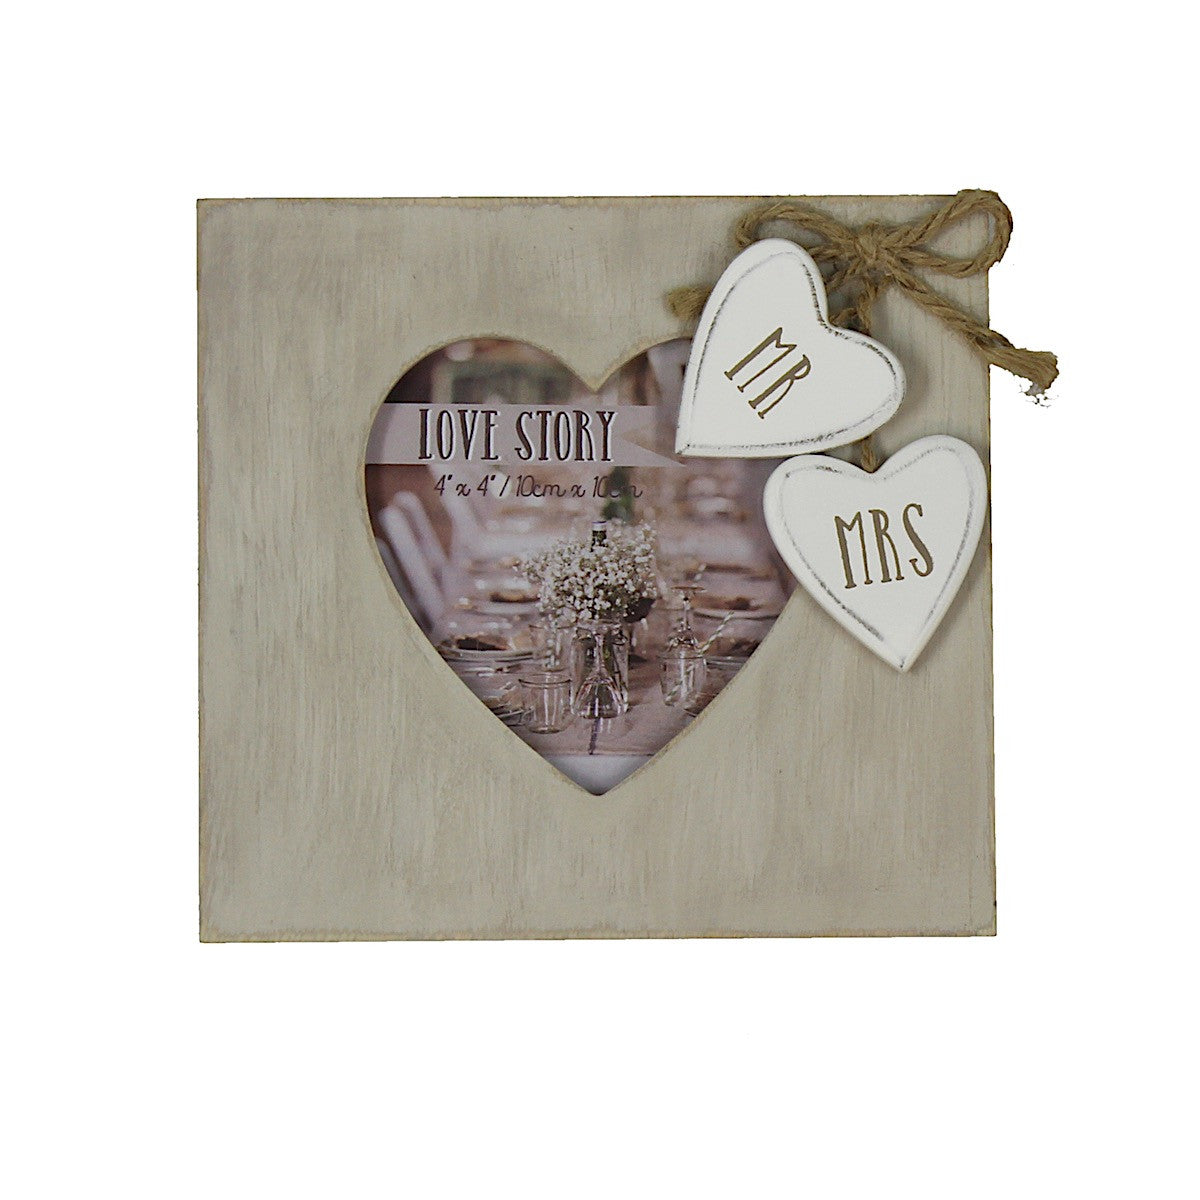 Love Story 'Mr and Mrs' Heart Photo Frame | More Than Just at Gift | Narborough Hall